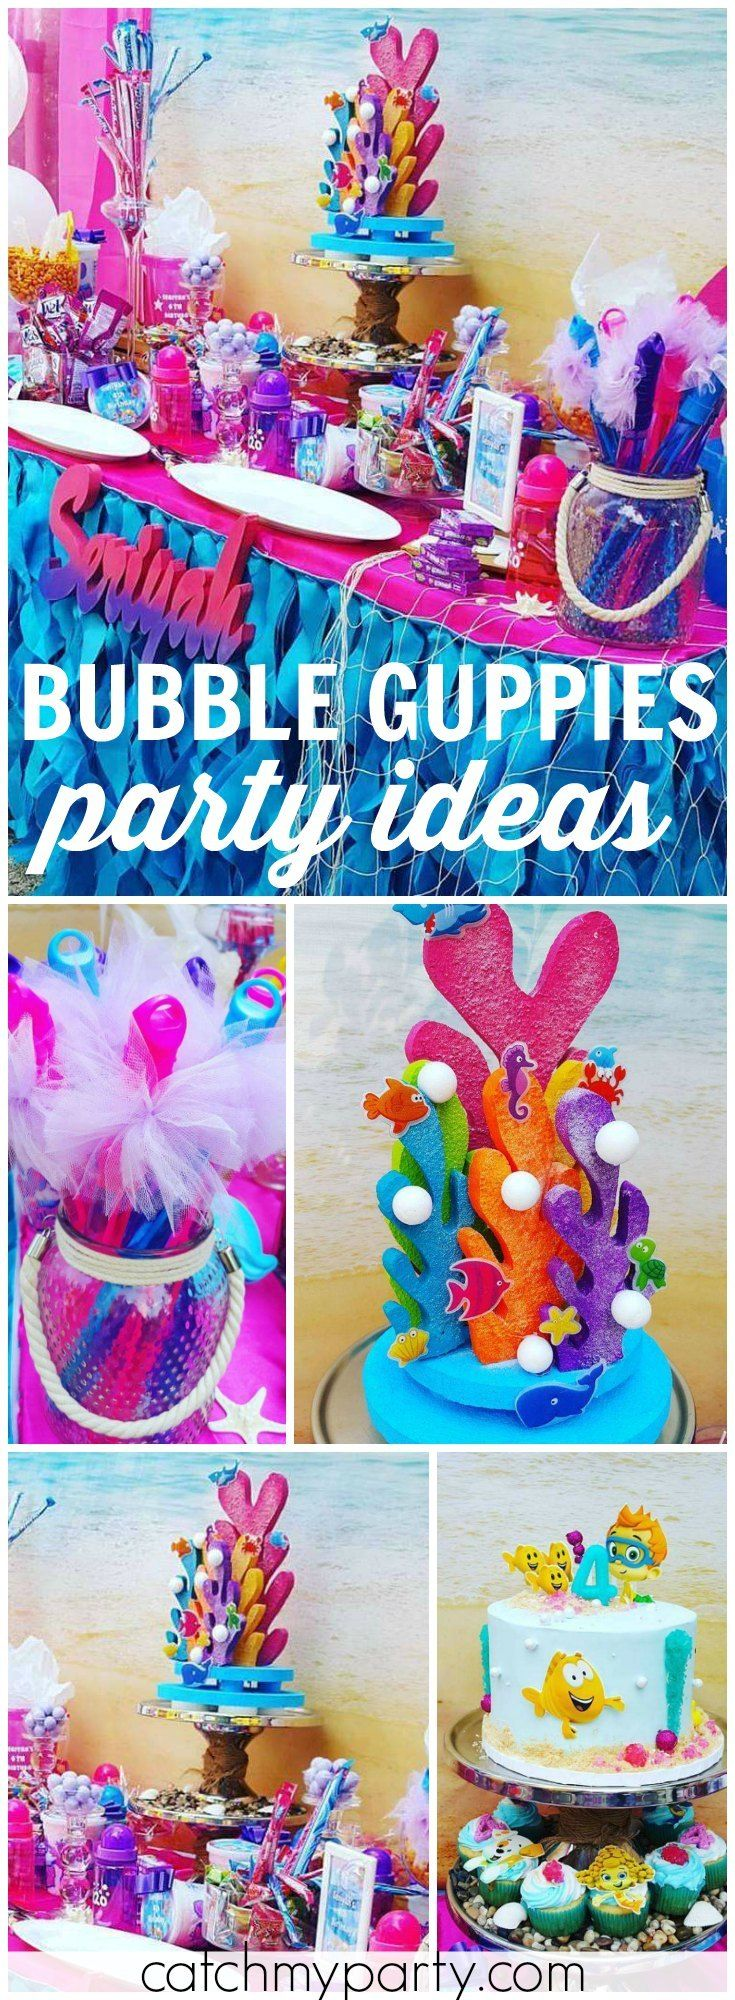 What a beautiful, vibrant Bubble Guppies girl birthday party! See more party ideas at Catchmyparty.com!